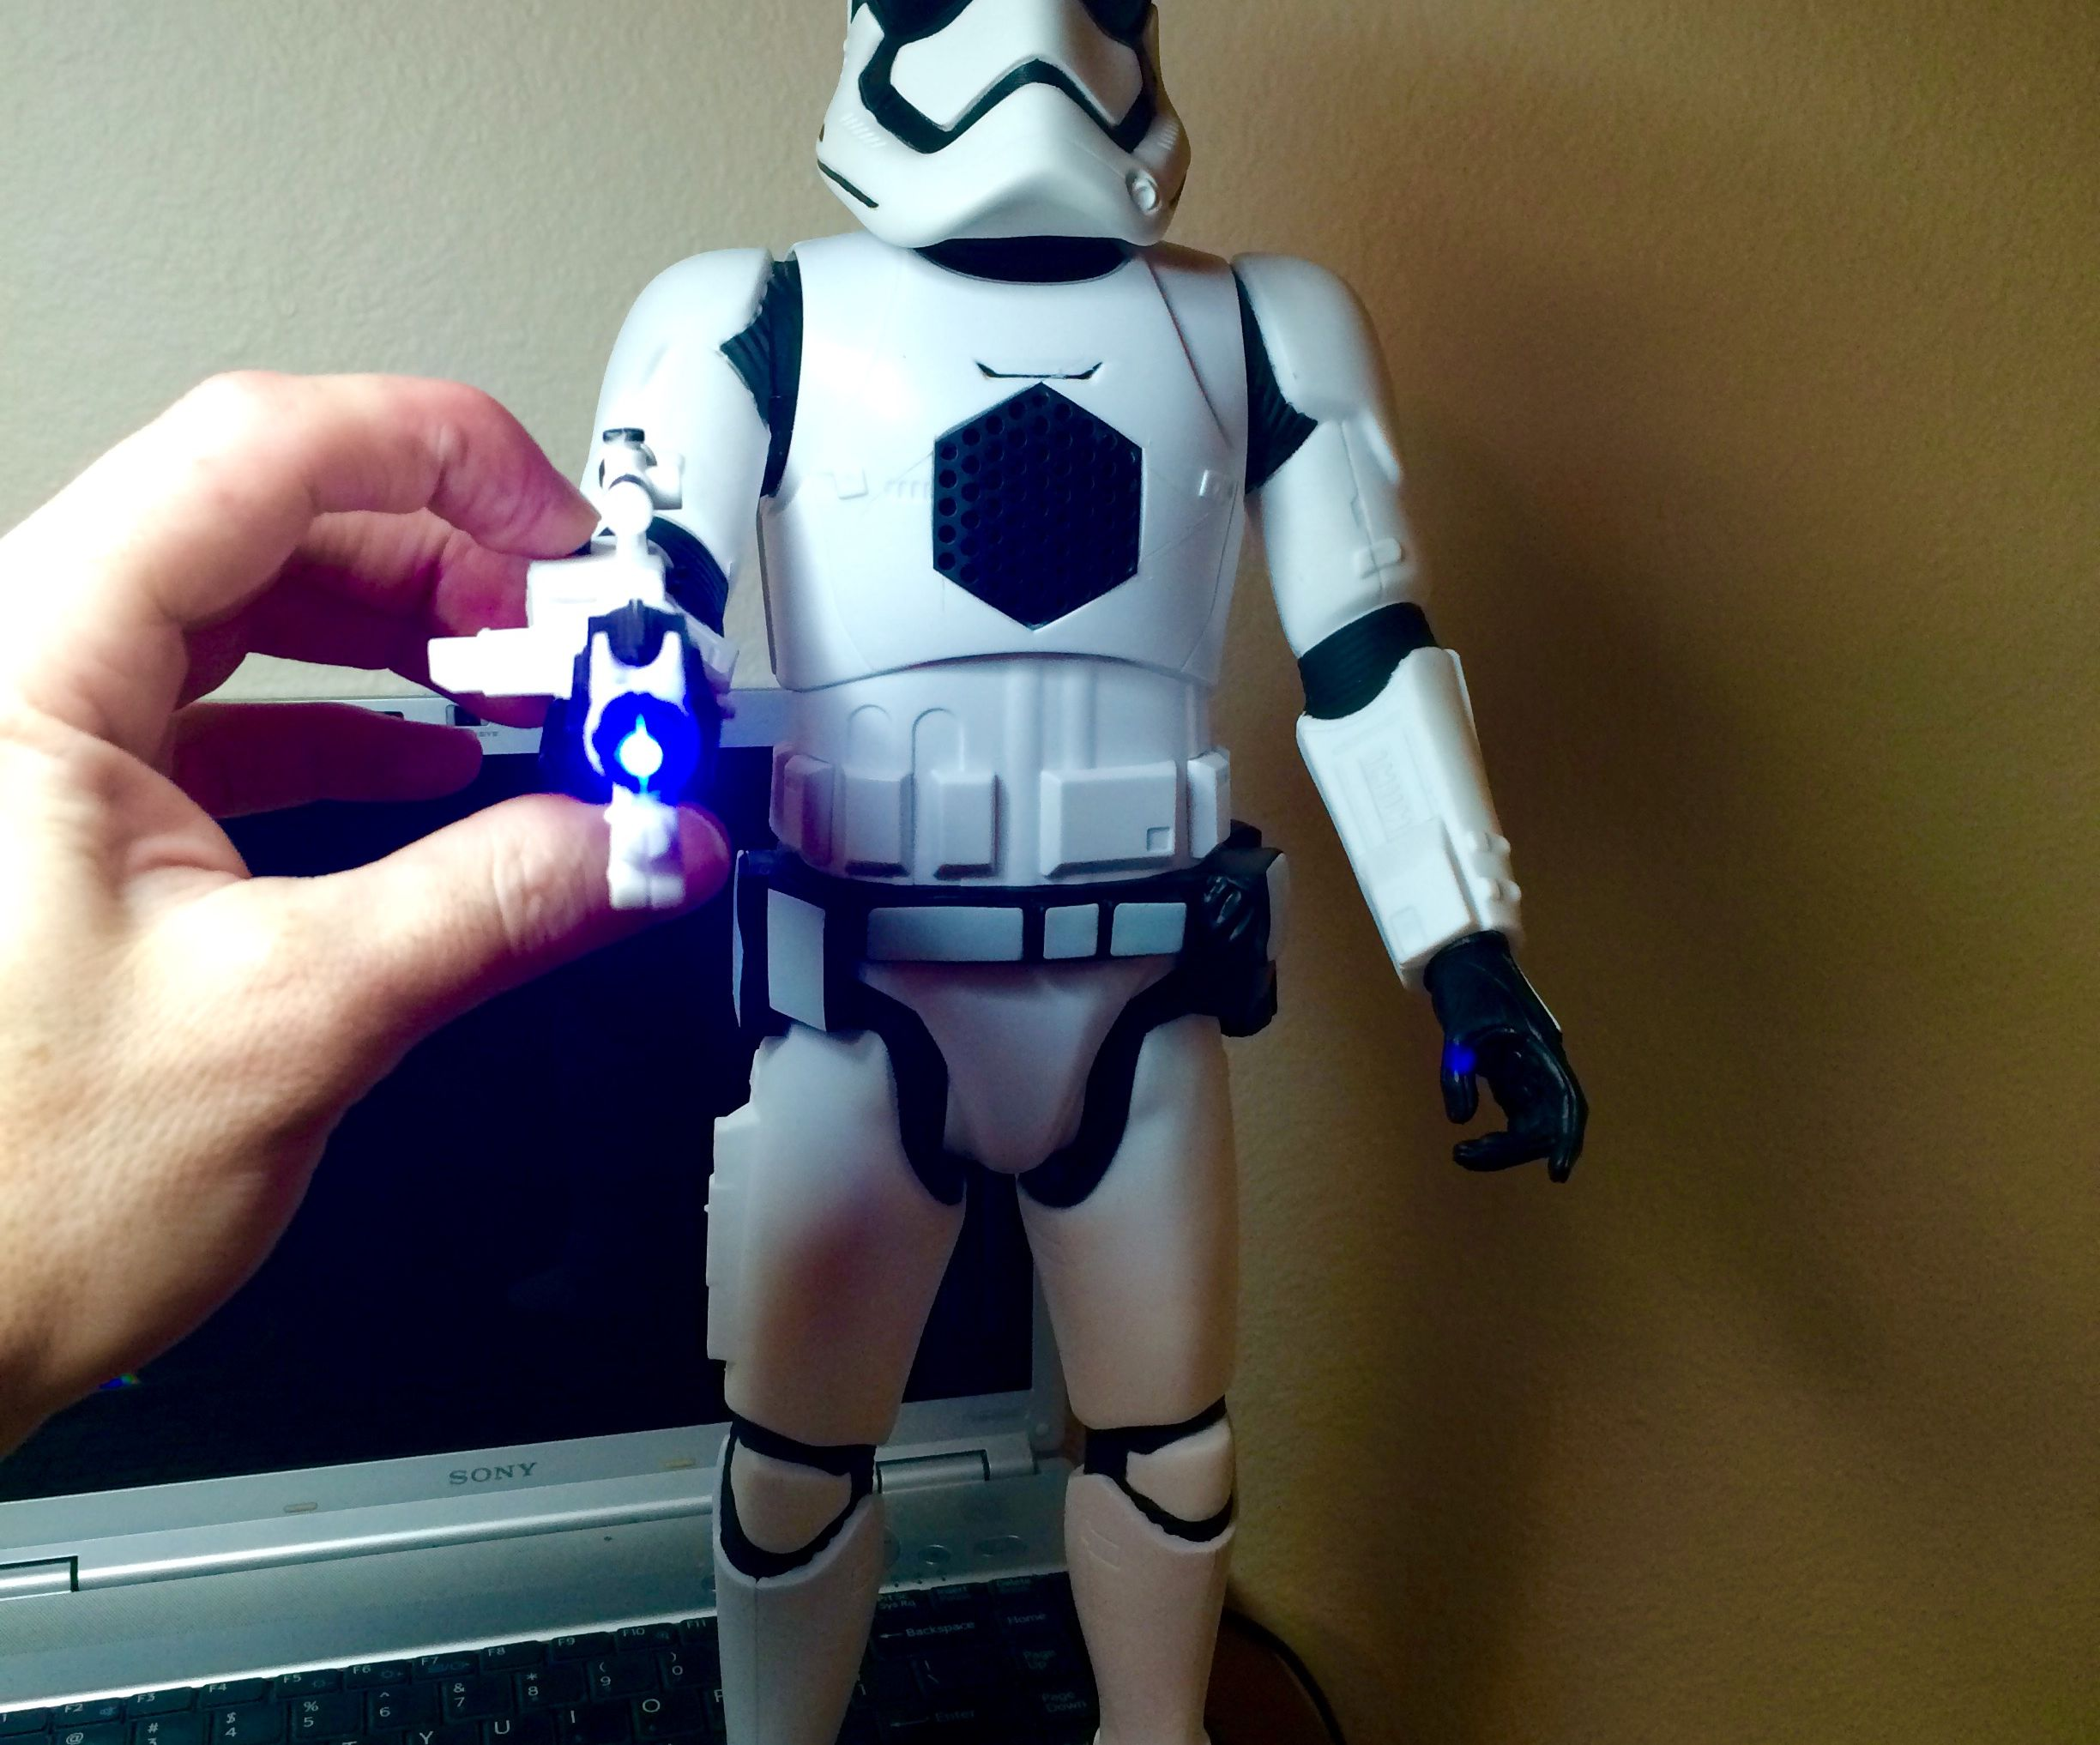 Storm Trooper Vs. Bluetooth Speaker